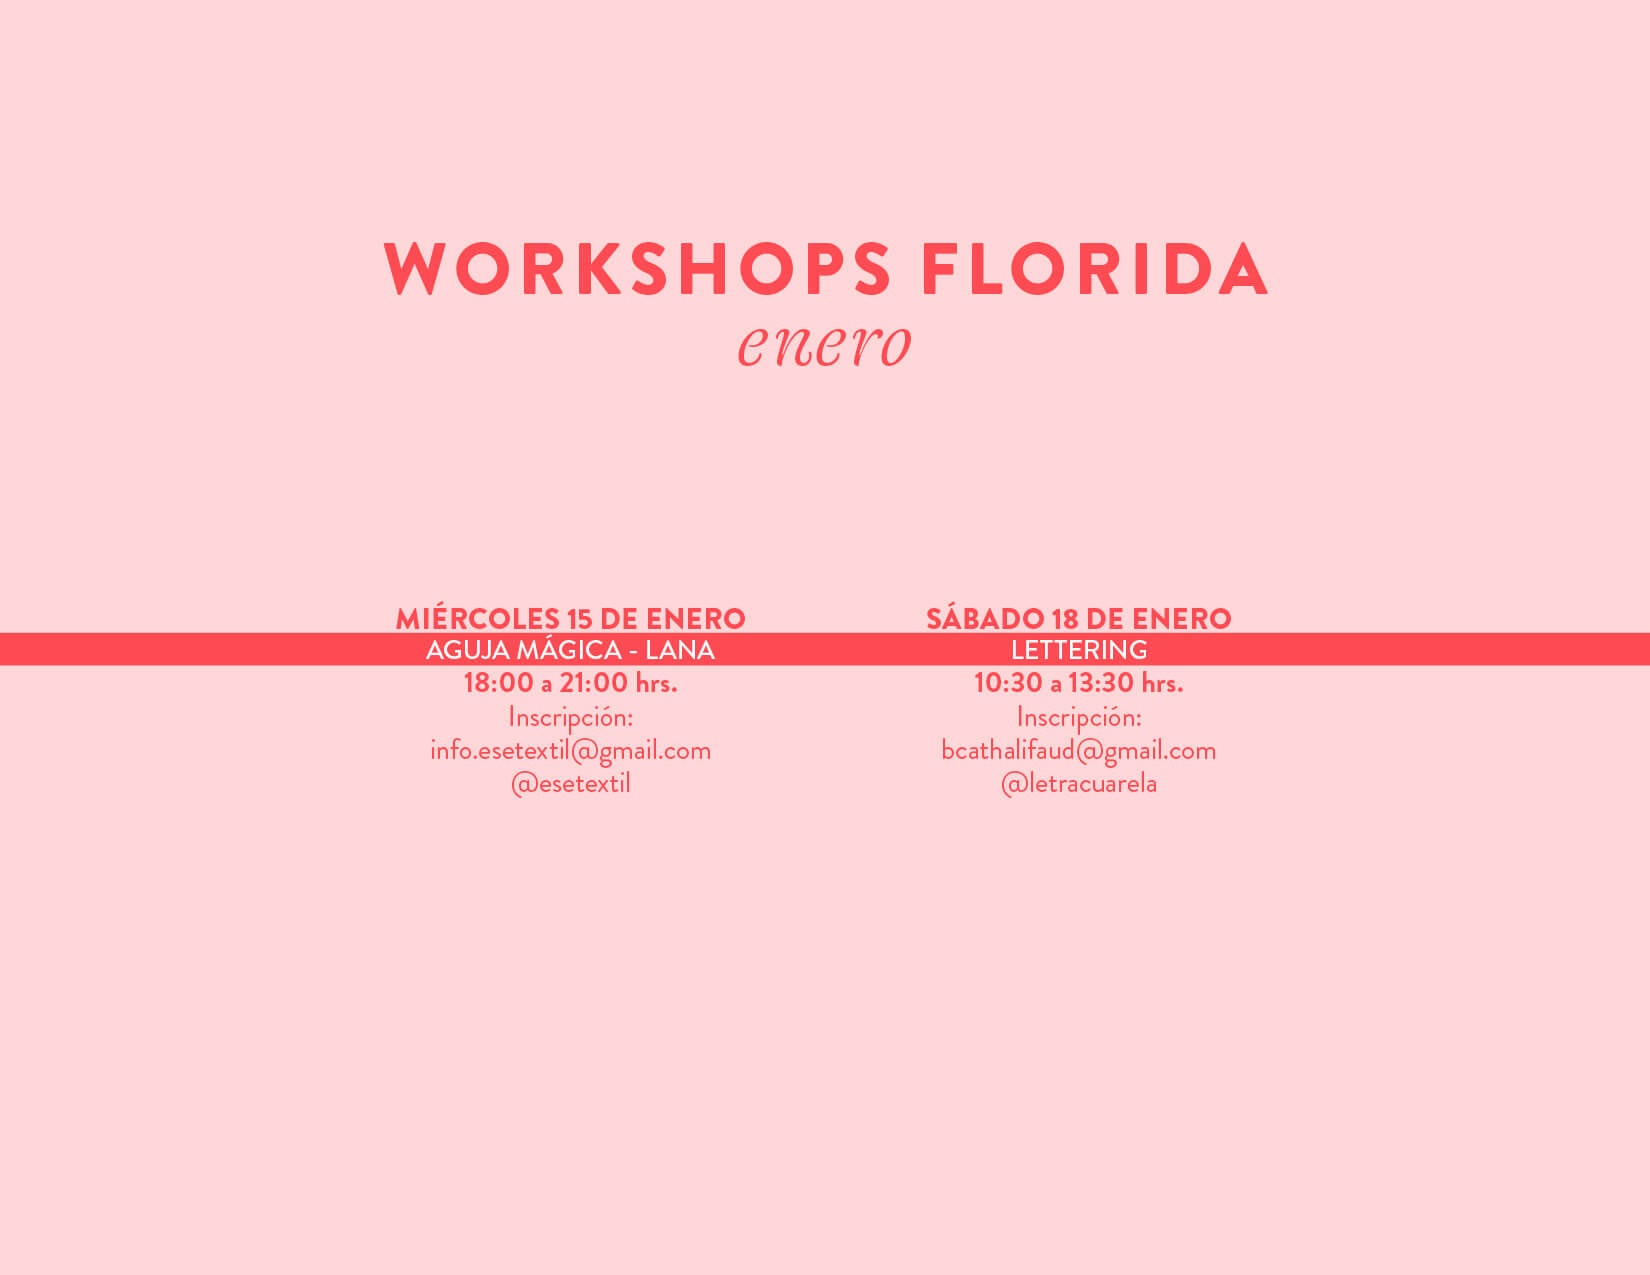 workshops la Florida